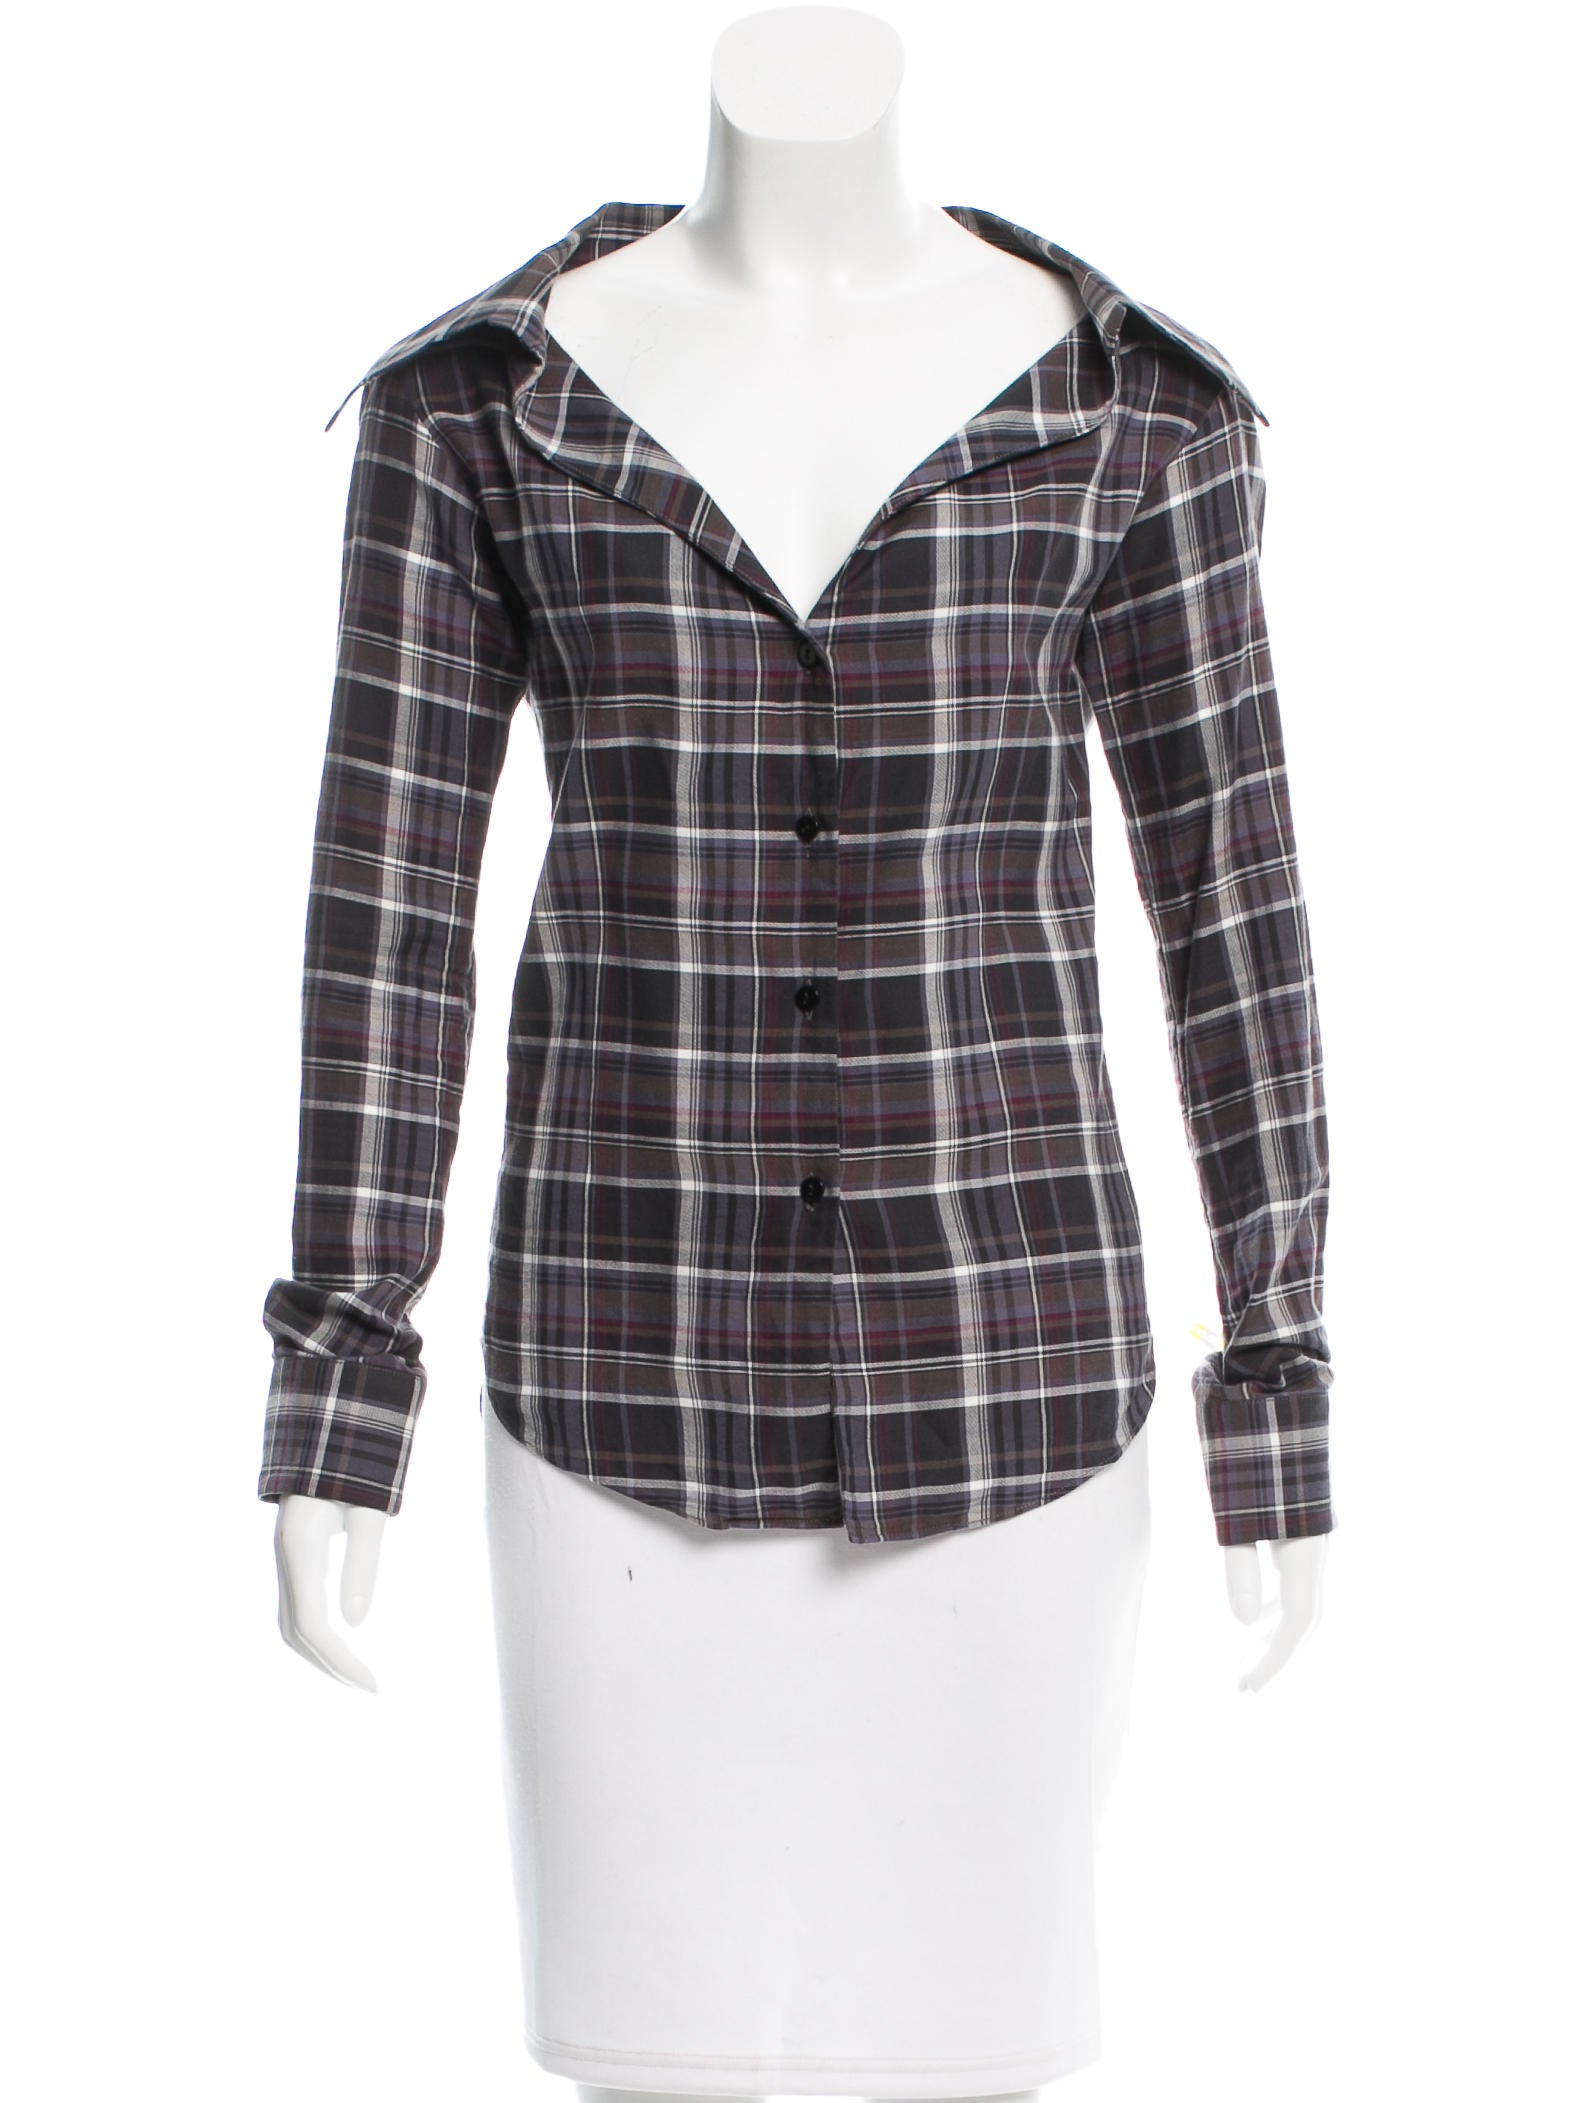 Mina Olya Plaid Flannel Top Clothing Wy620018 The